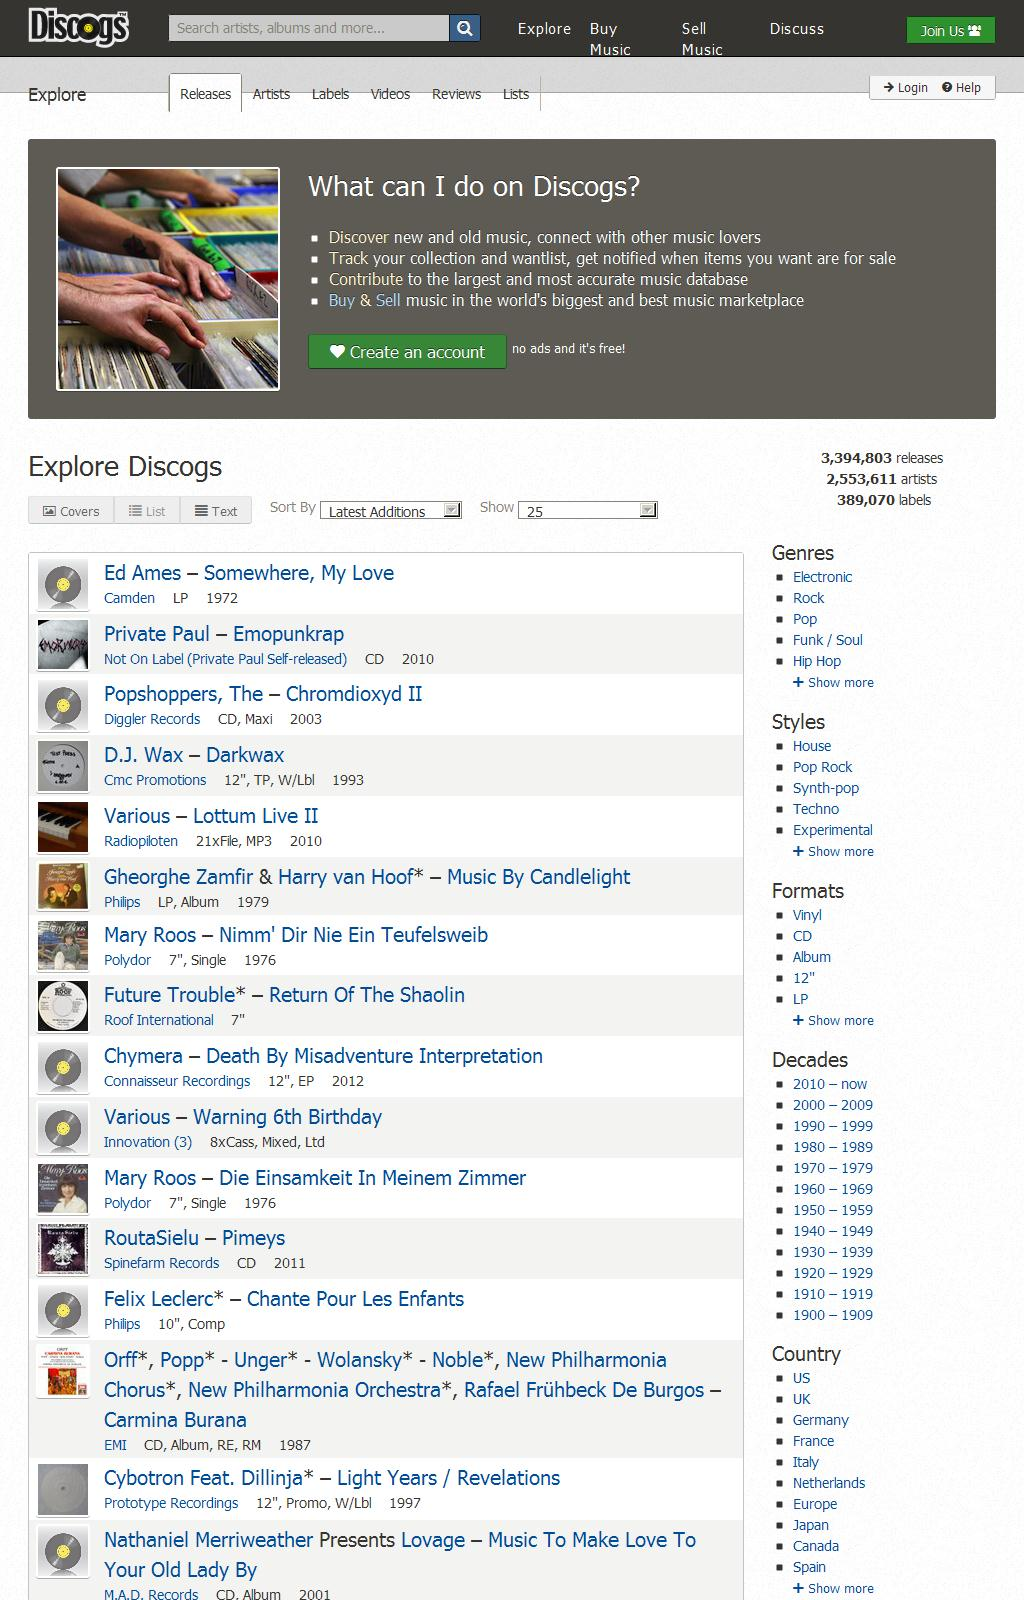 Explore  Releases on Discogs